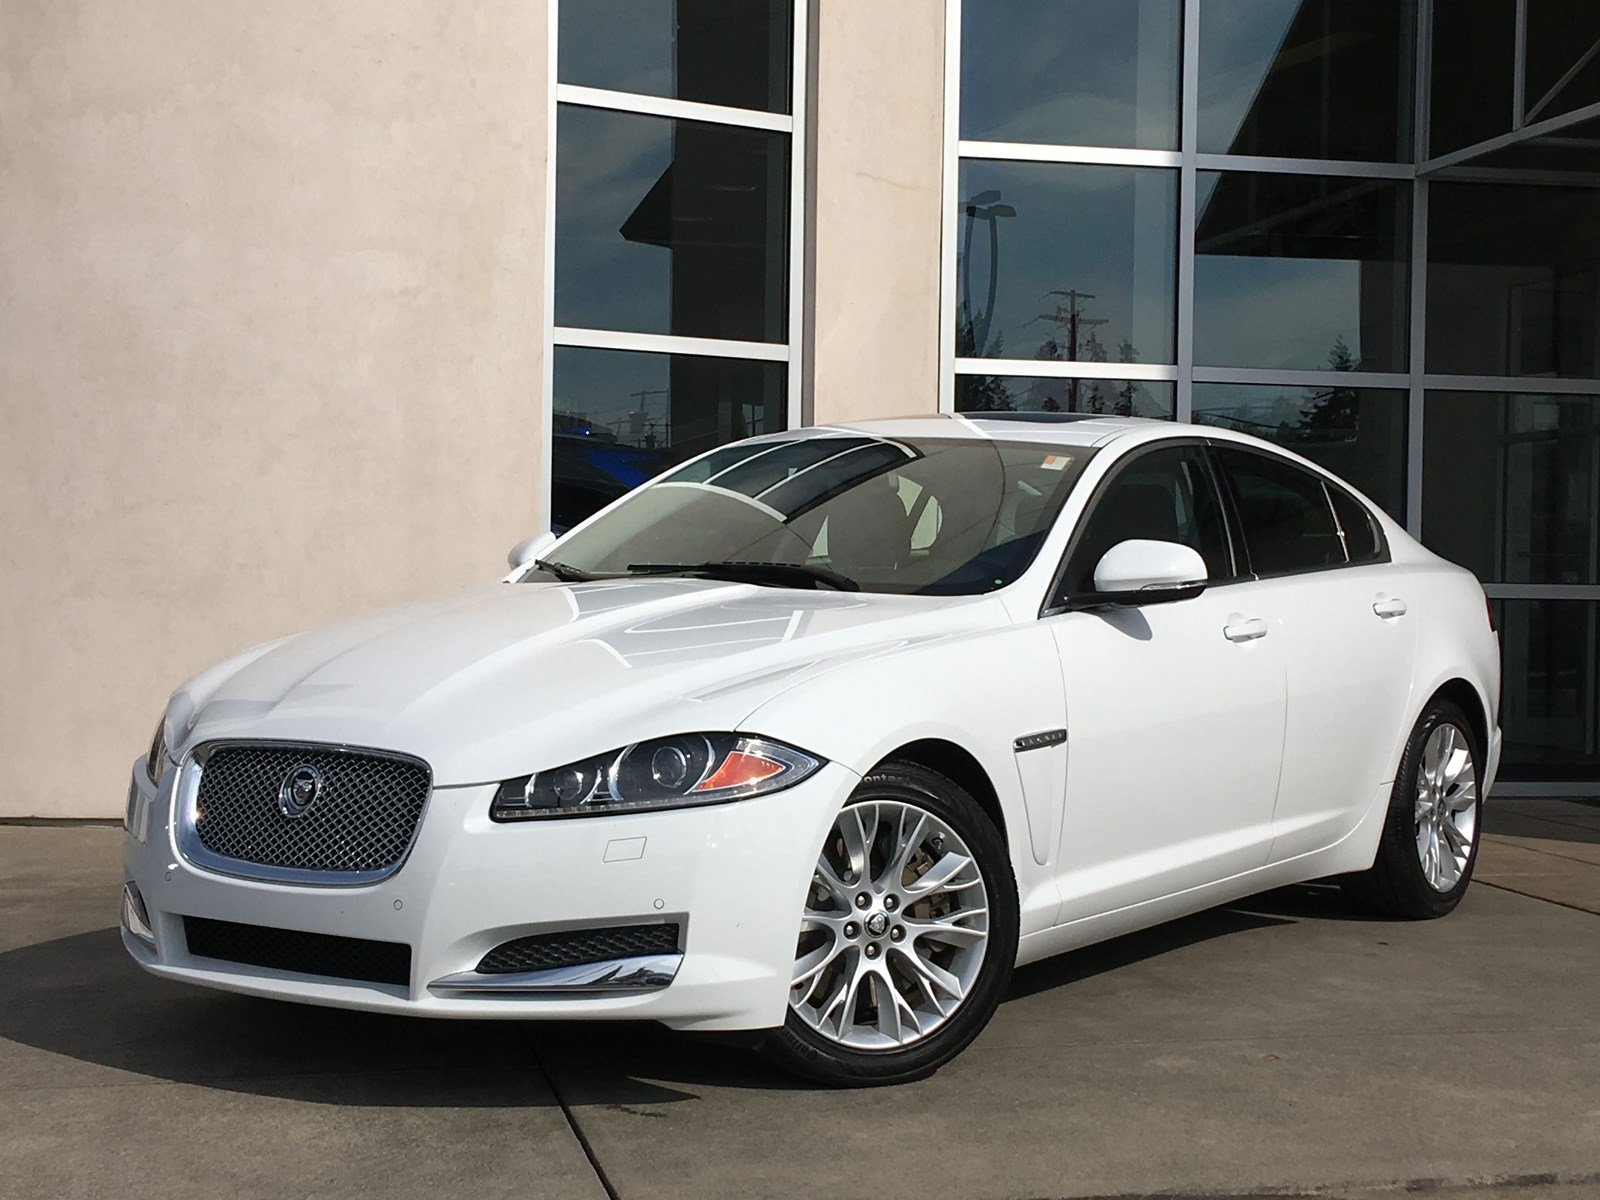 Perfect Pre Owned 2013 Jaguar XF V6 RWD